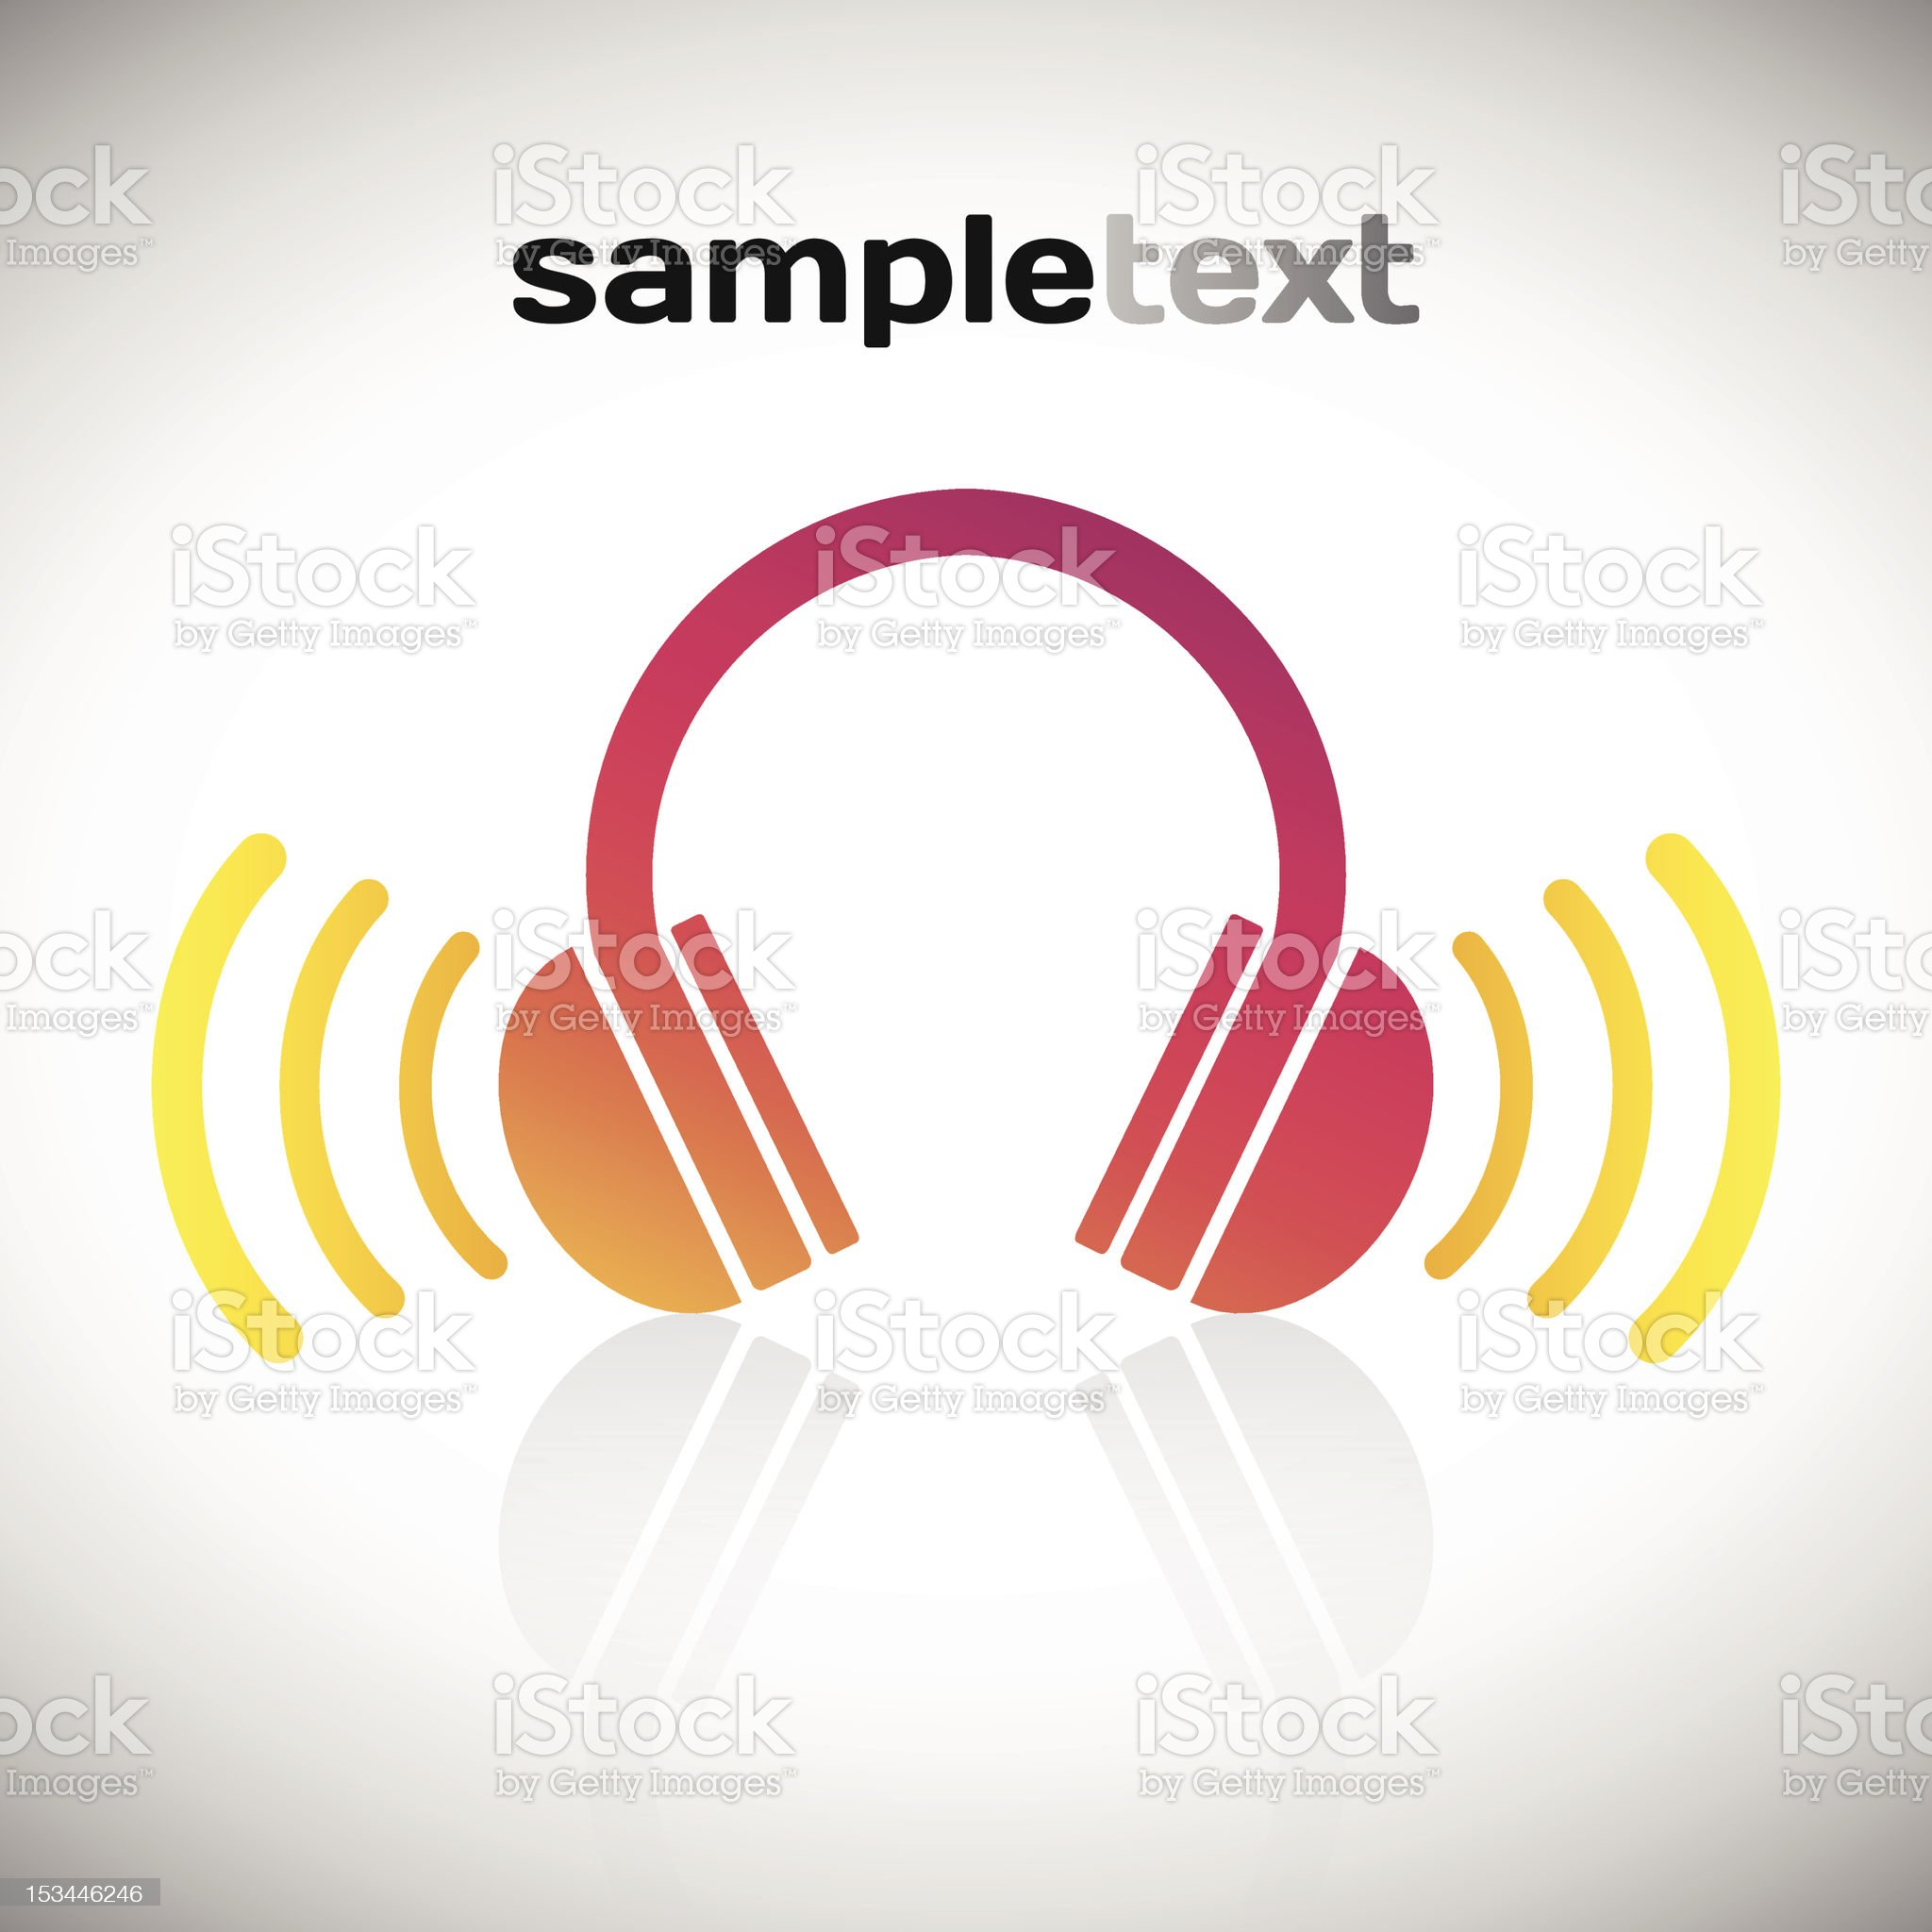 Vector graphics of headphones and sound waves royalty-free stock vector art